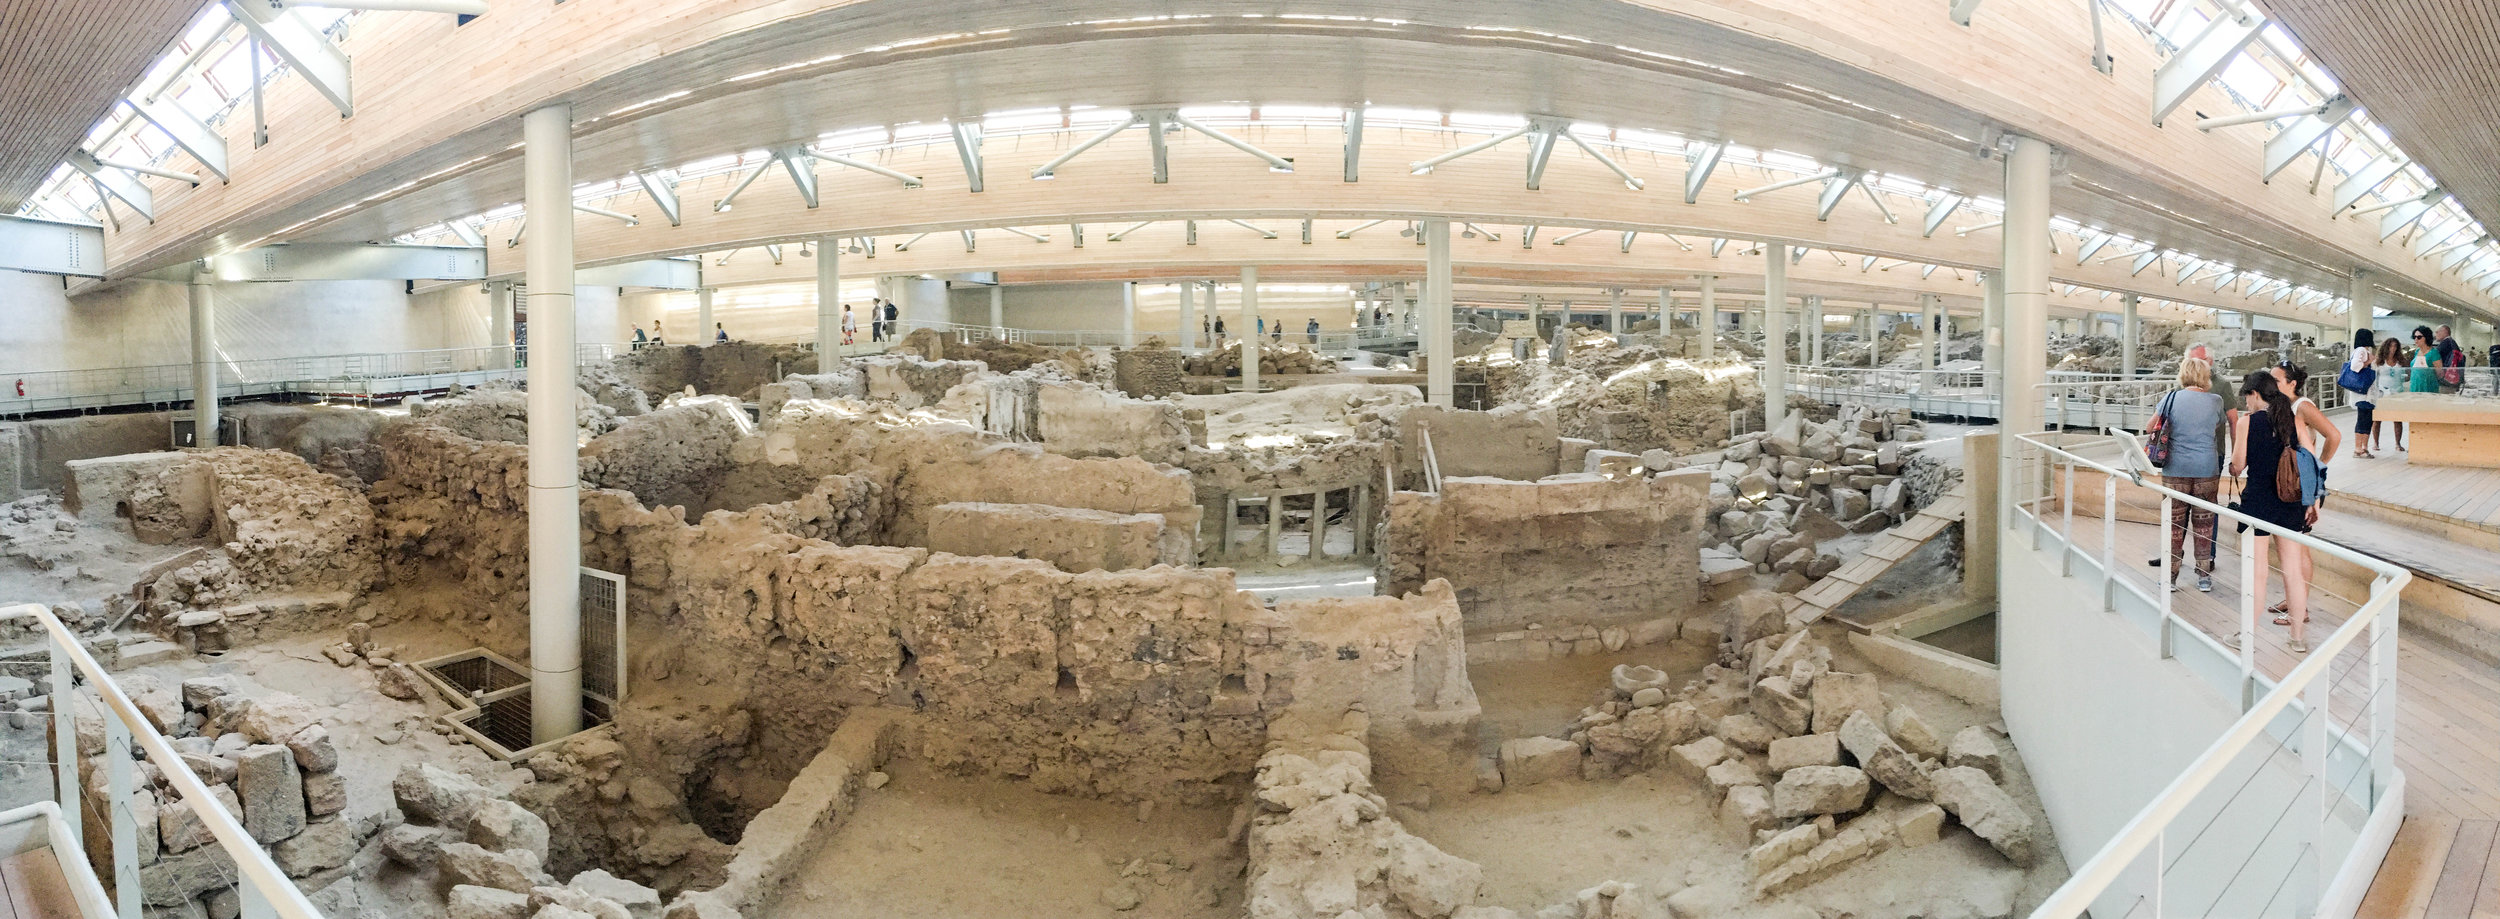 Archeological site of the ancient city of Akrotiri, Santorini, Greece